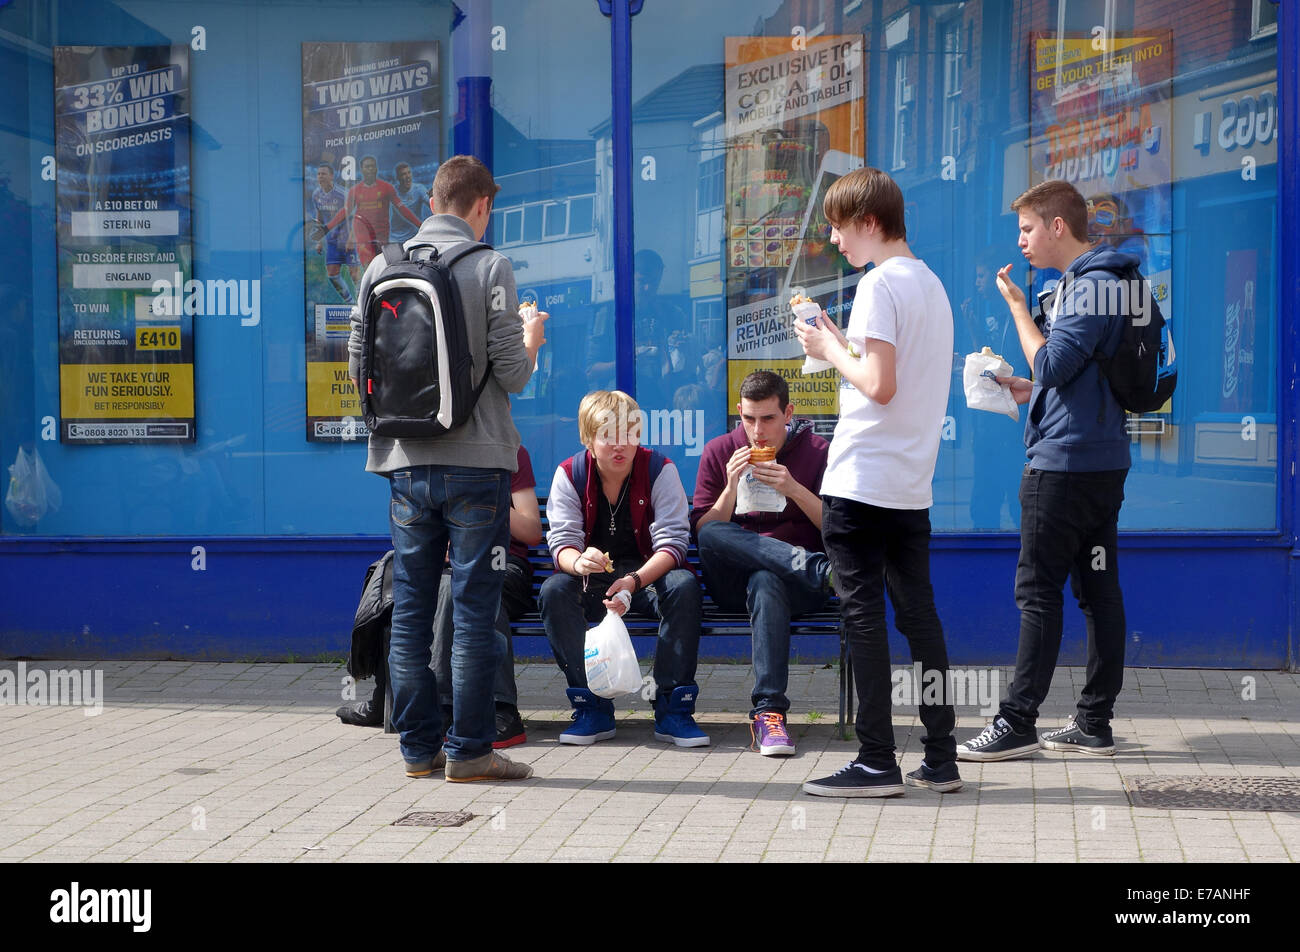 Teenage boys youths eating take away food lunchtime town centre street Wellington Shropshire Uk - Stock Image